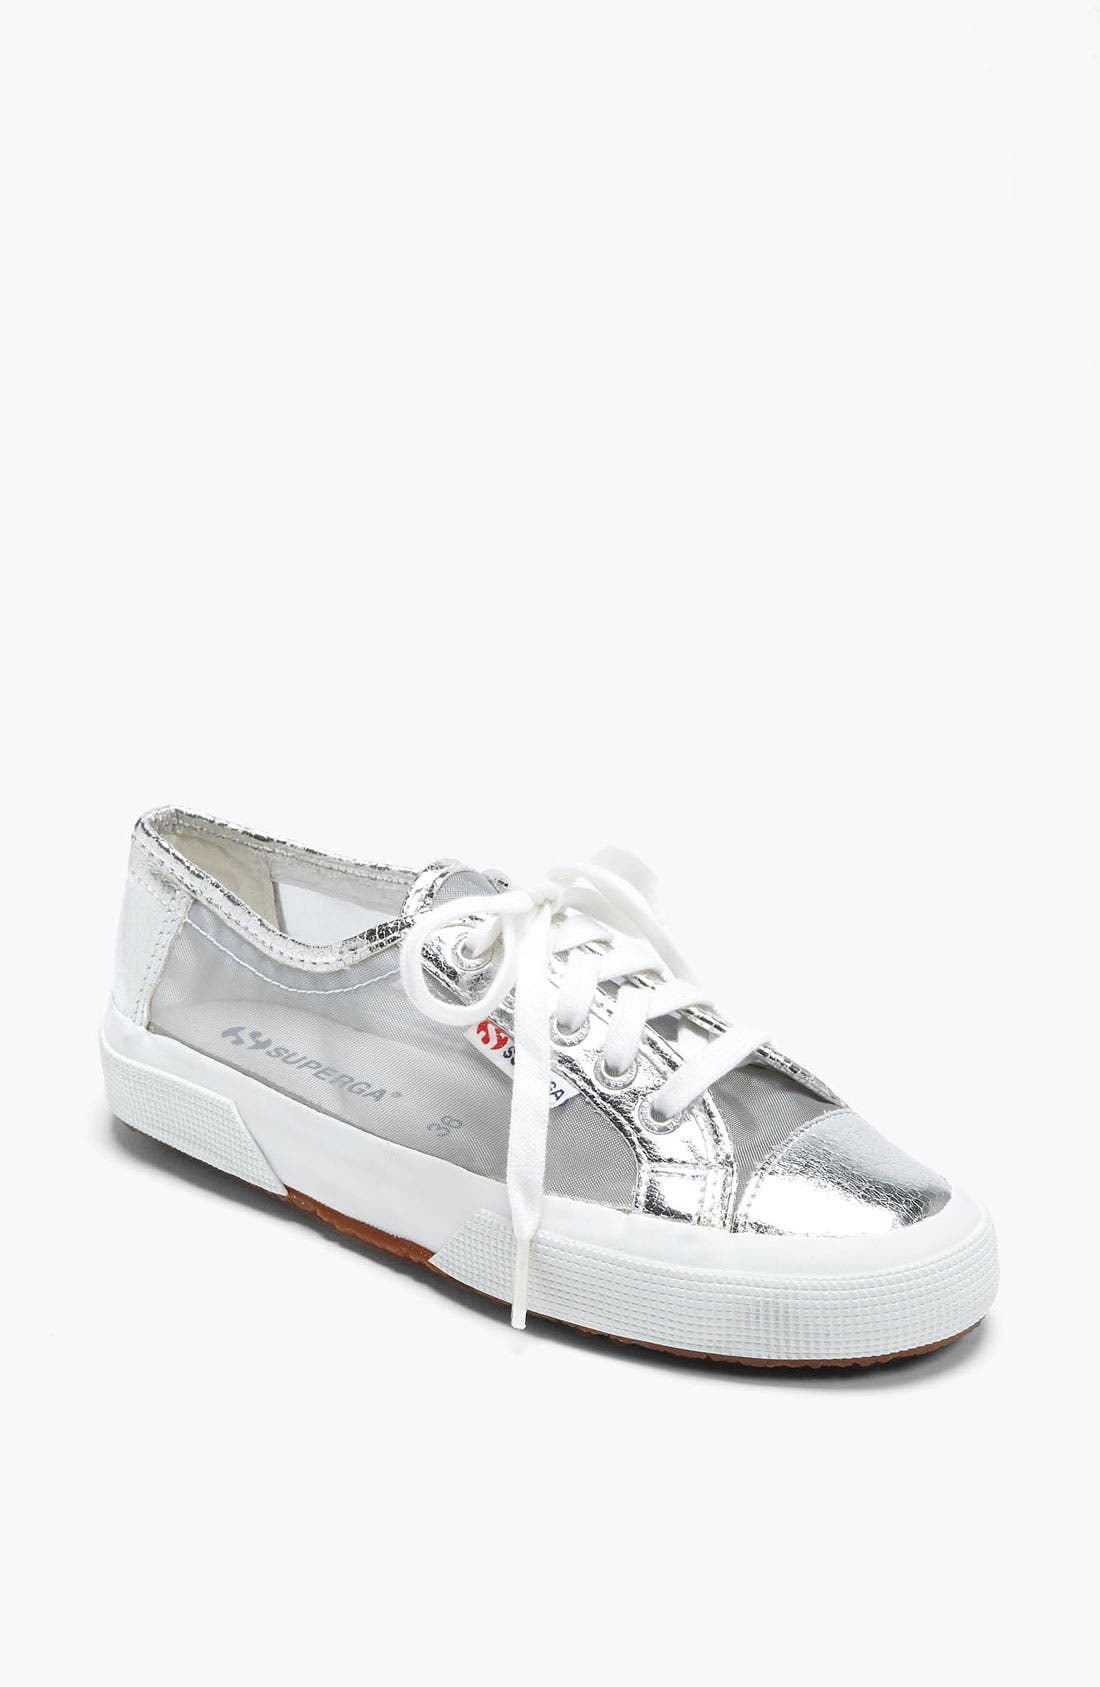 Alternate Image 1 Selected - Superga 'Netu' Sneaker (Women)